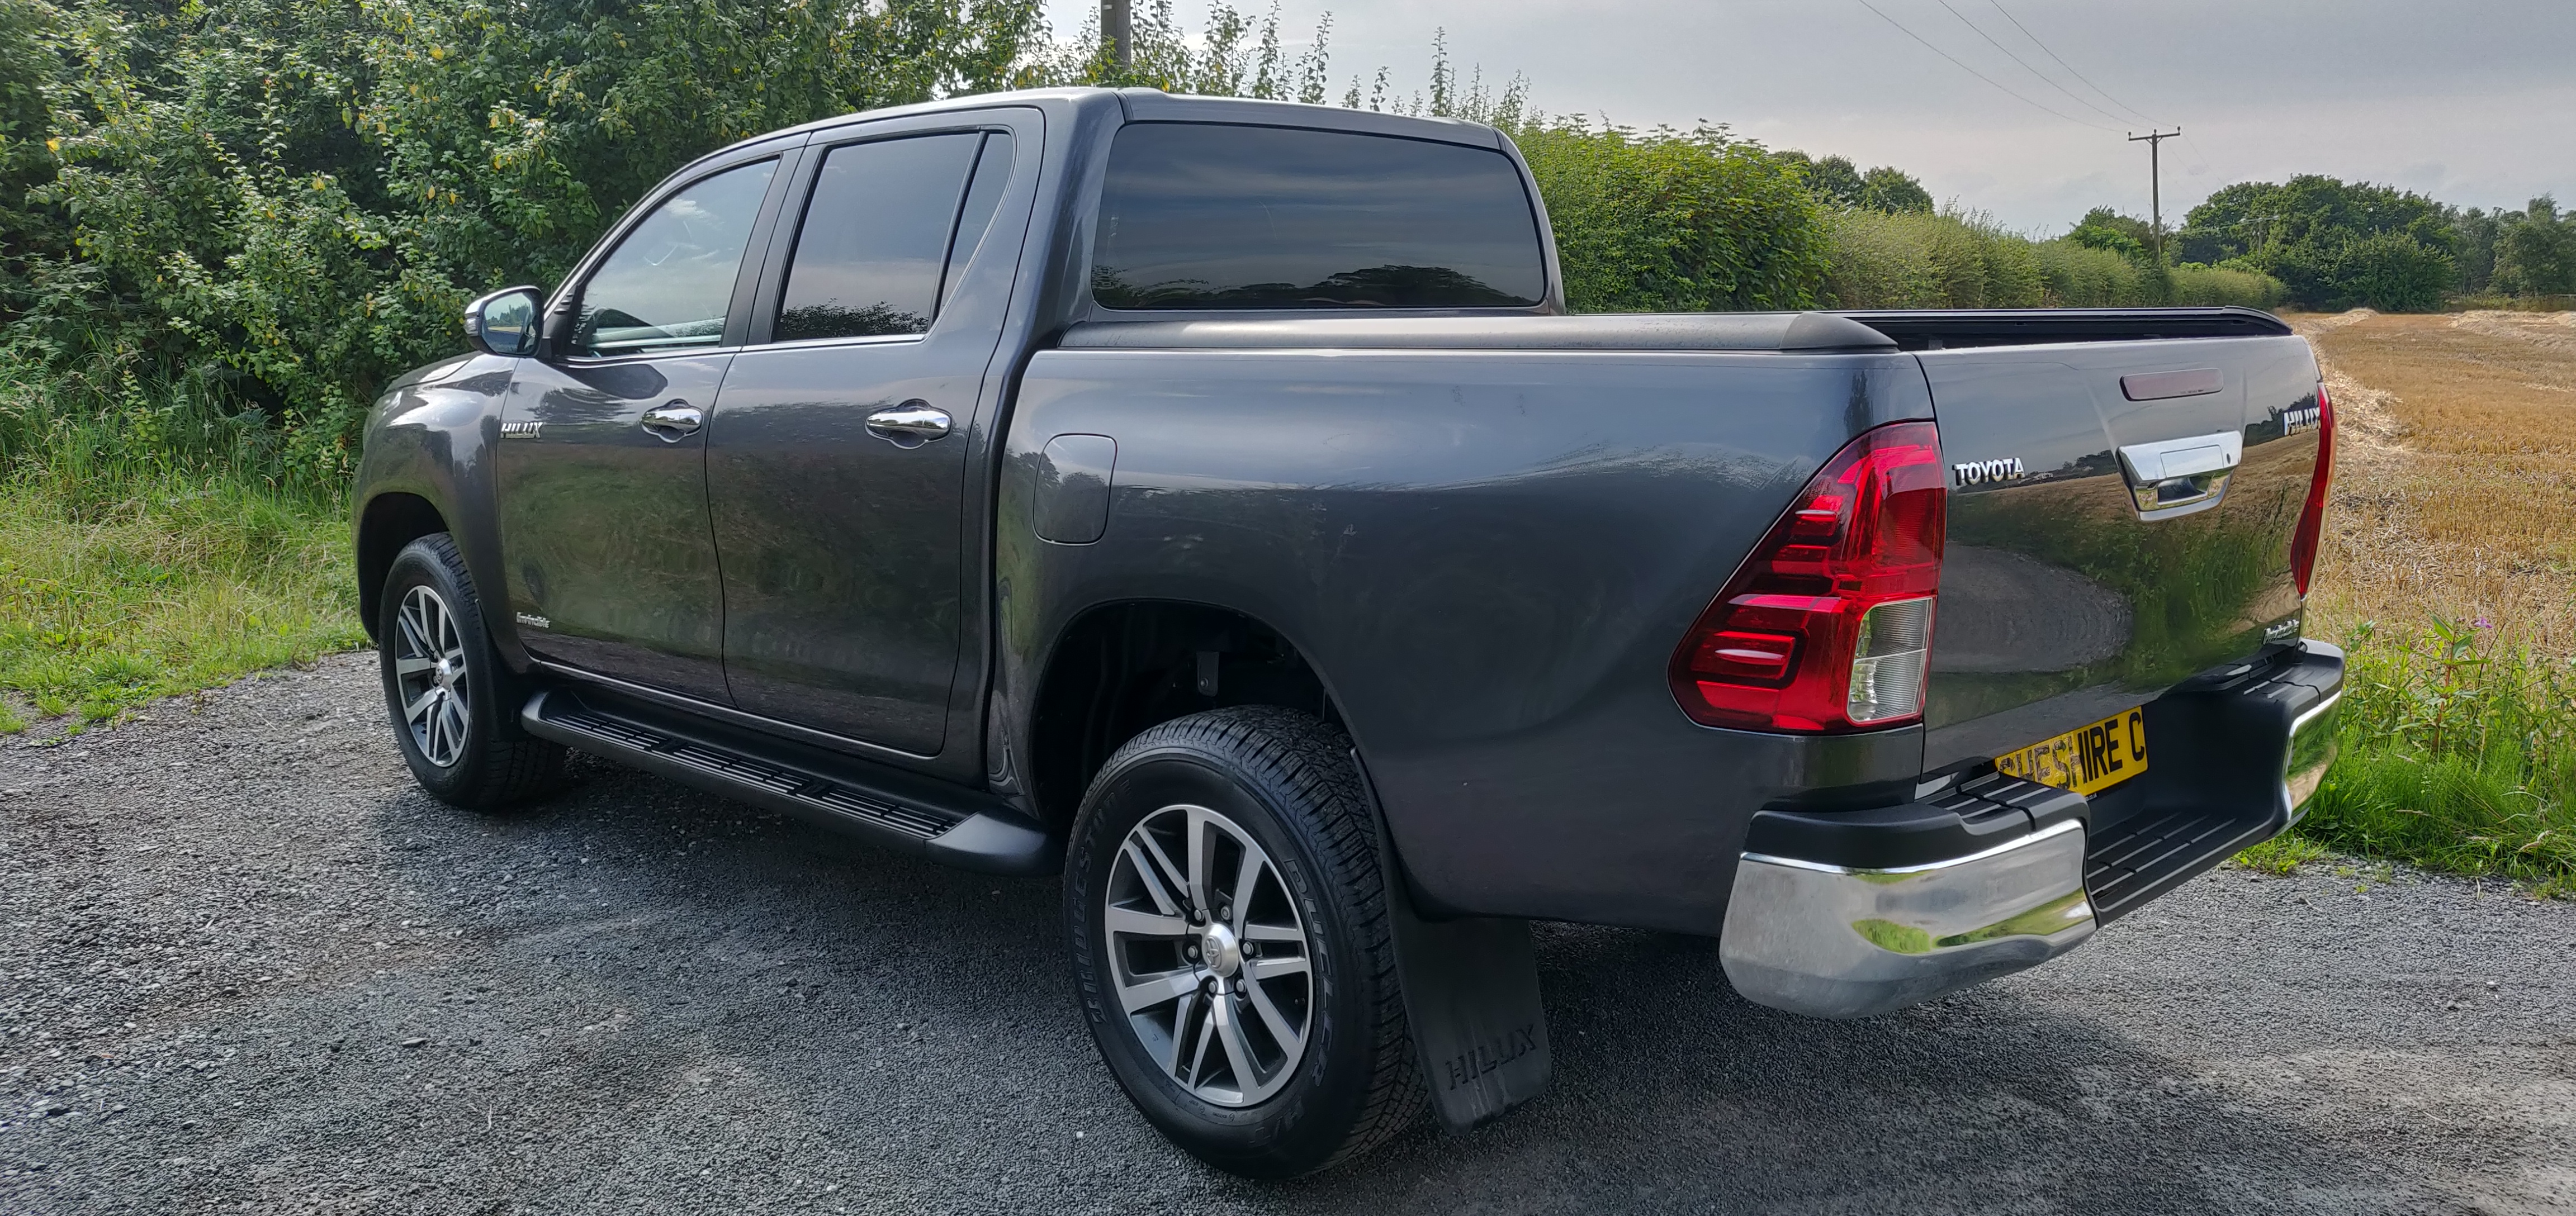 19 New Hilux Invin Deep titanium (7)